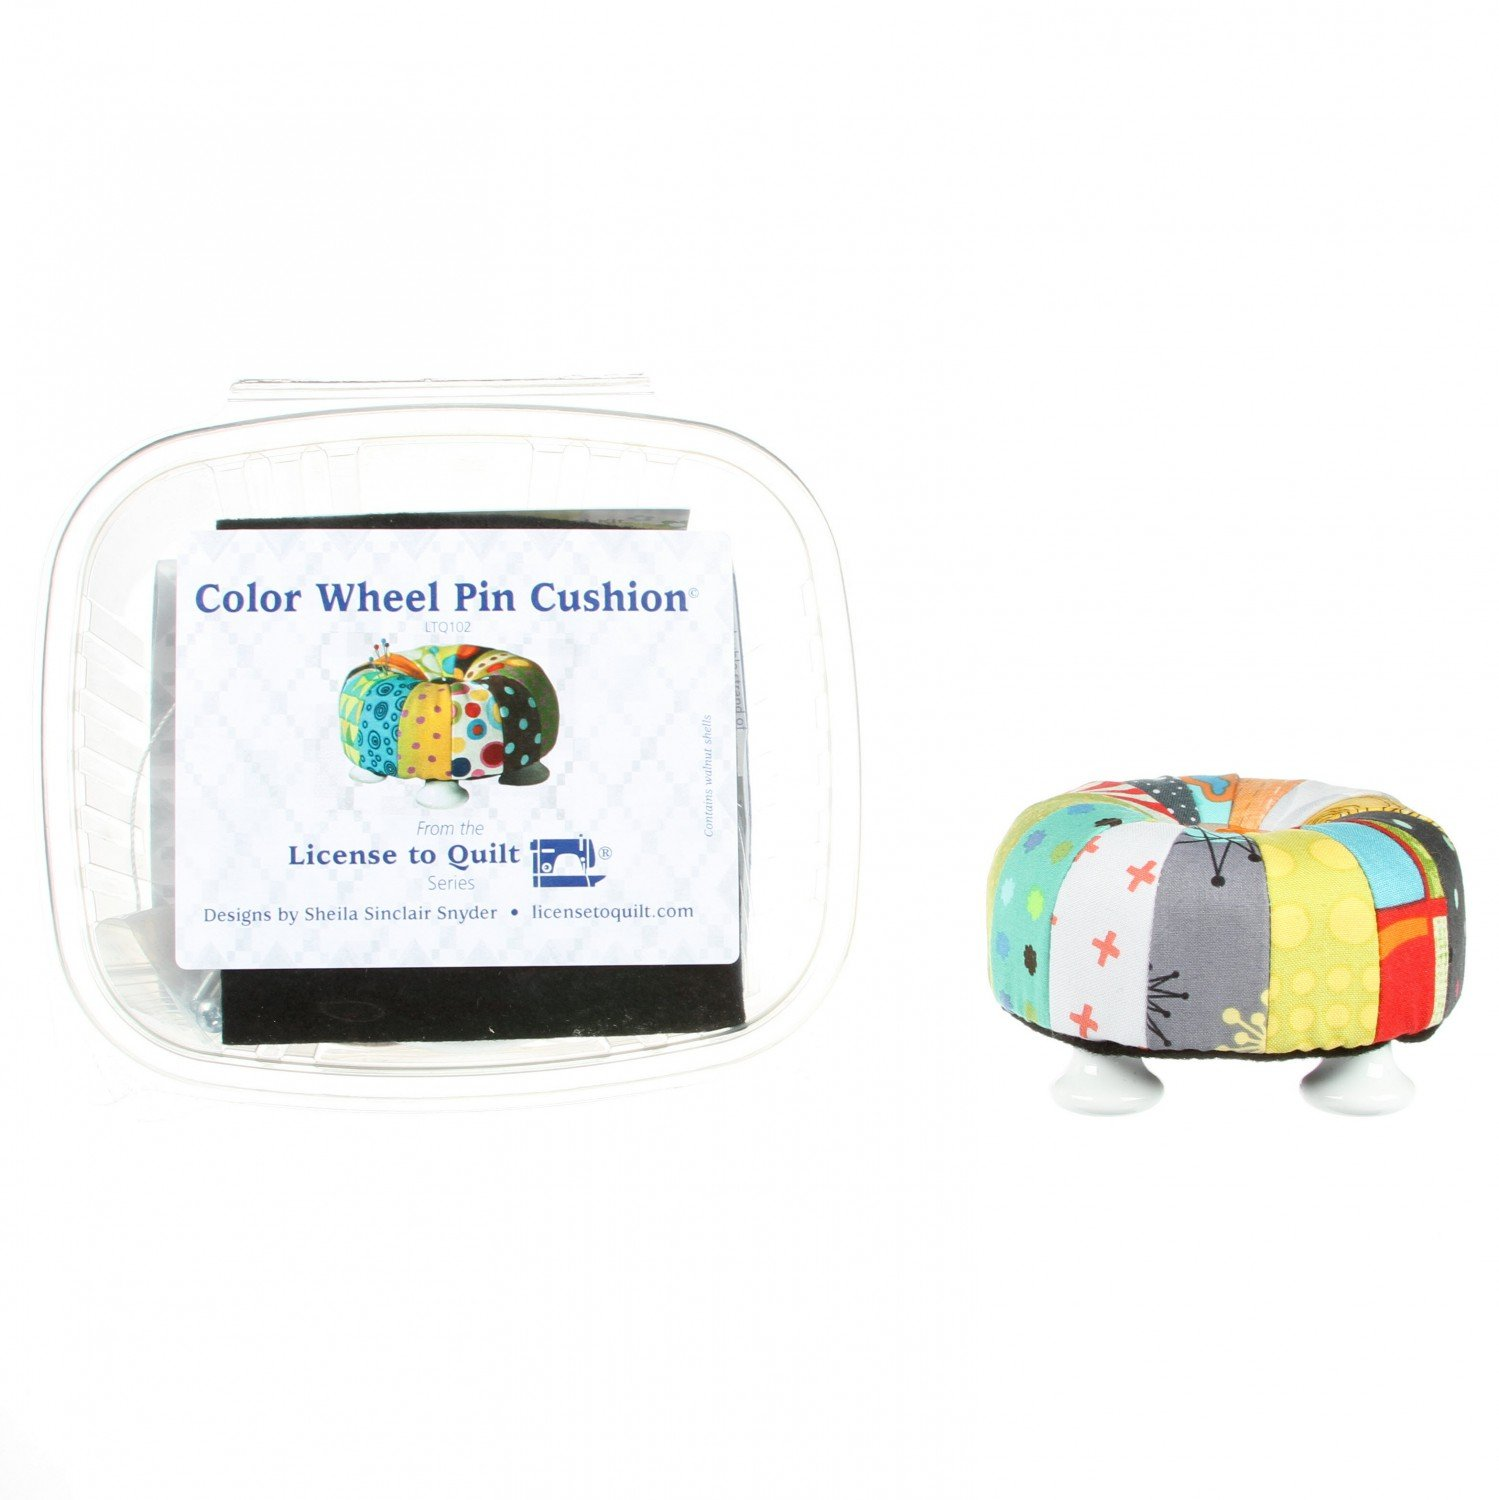 Color Wheel Tuffet Pin Cushion Kit - LTQ102 - MAY BE RESTOCKED UPON REQUEST